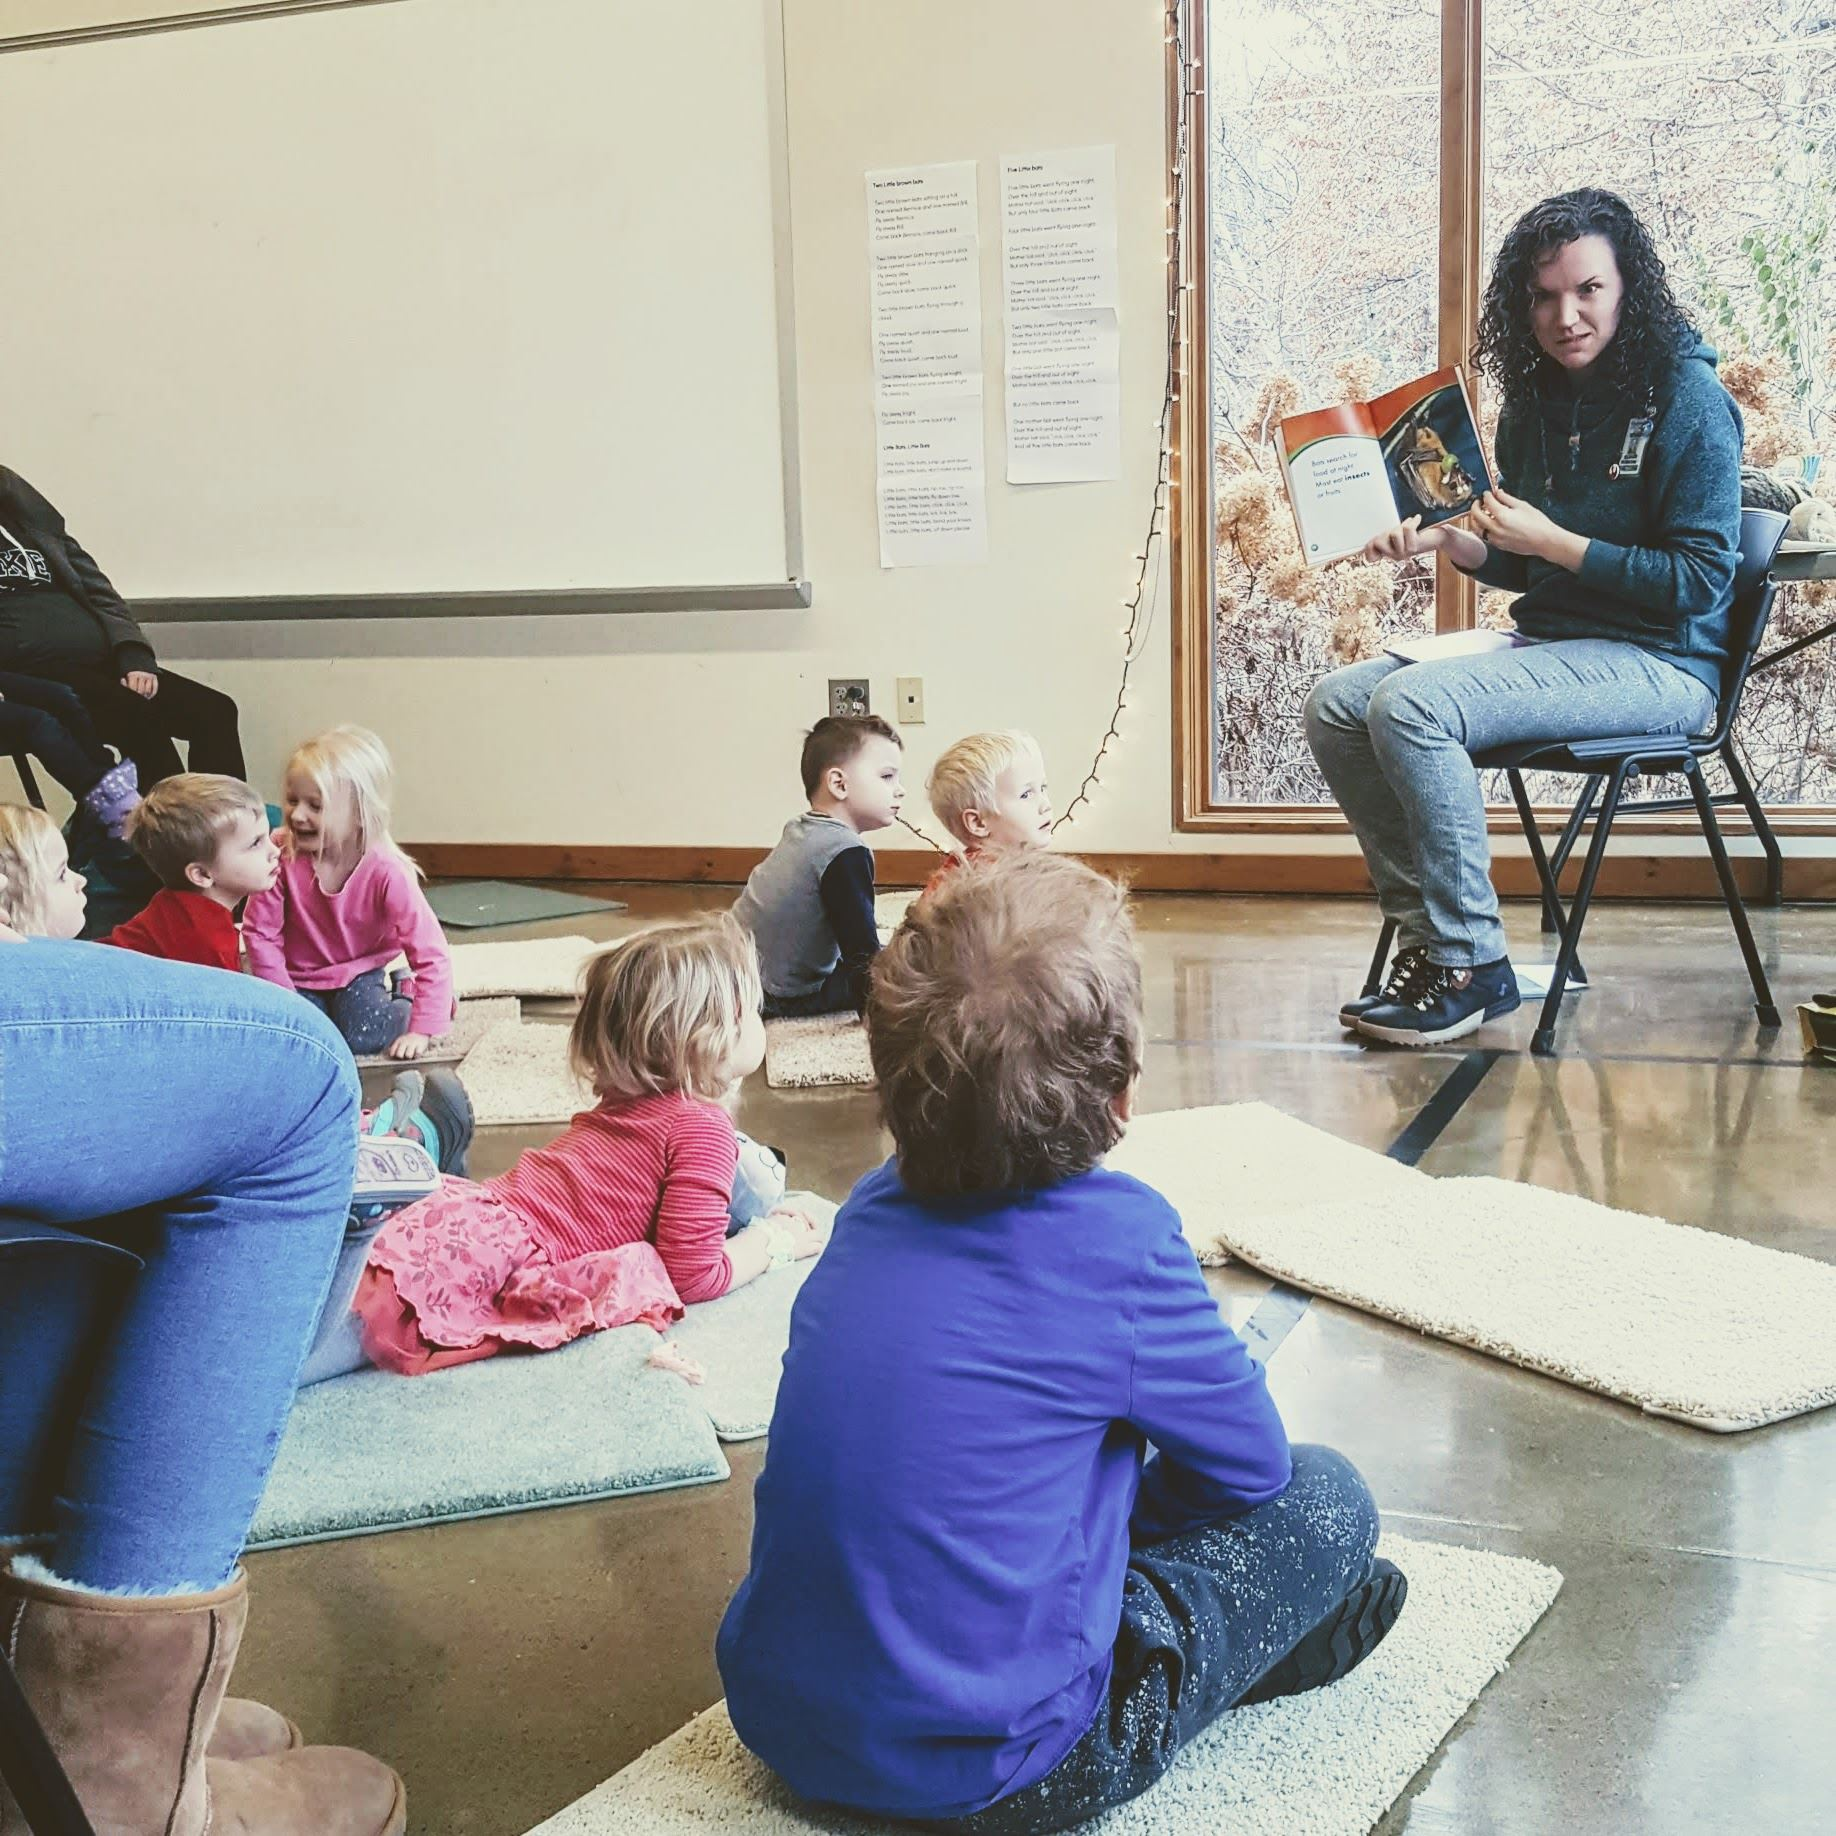 A librarian reads a book to children in the front row